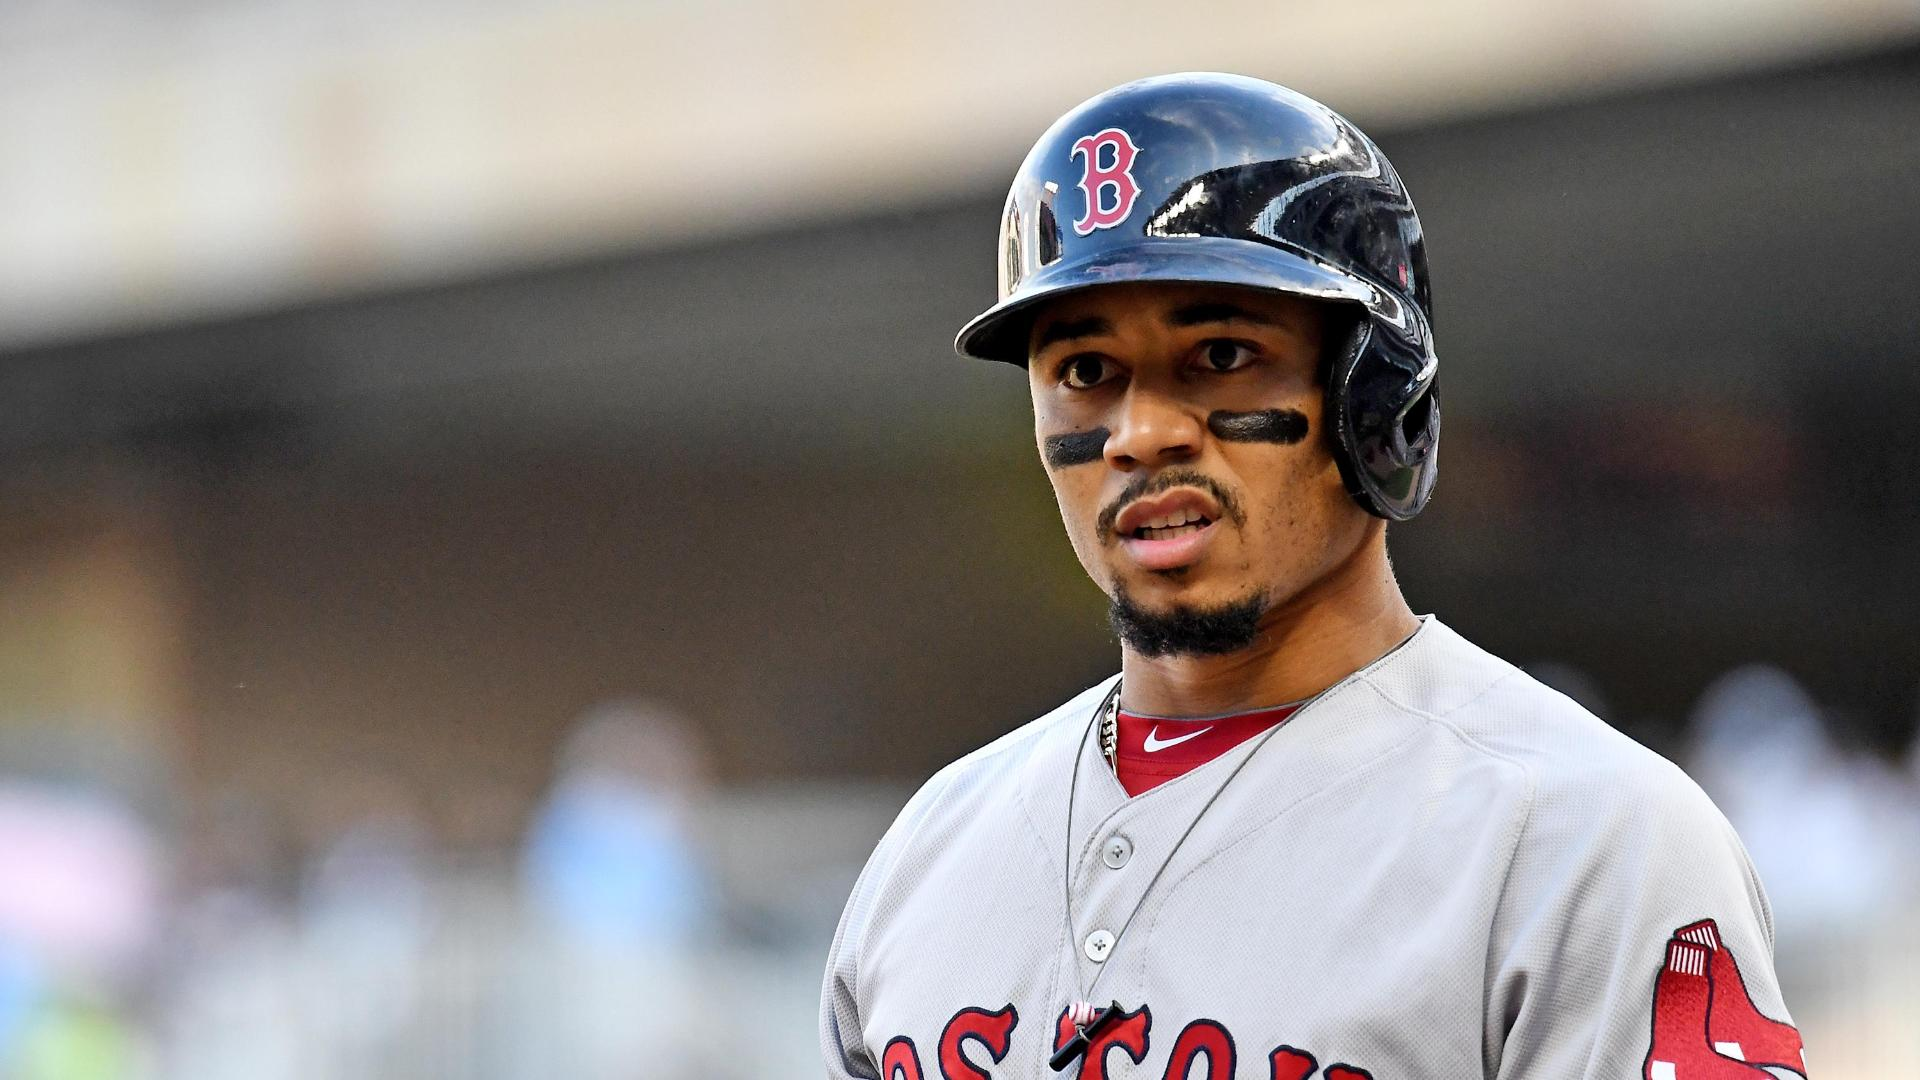 Are the Red Sox going to regret trading Betts?